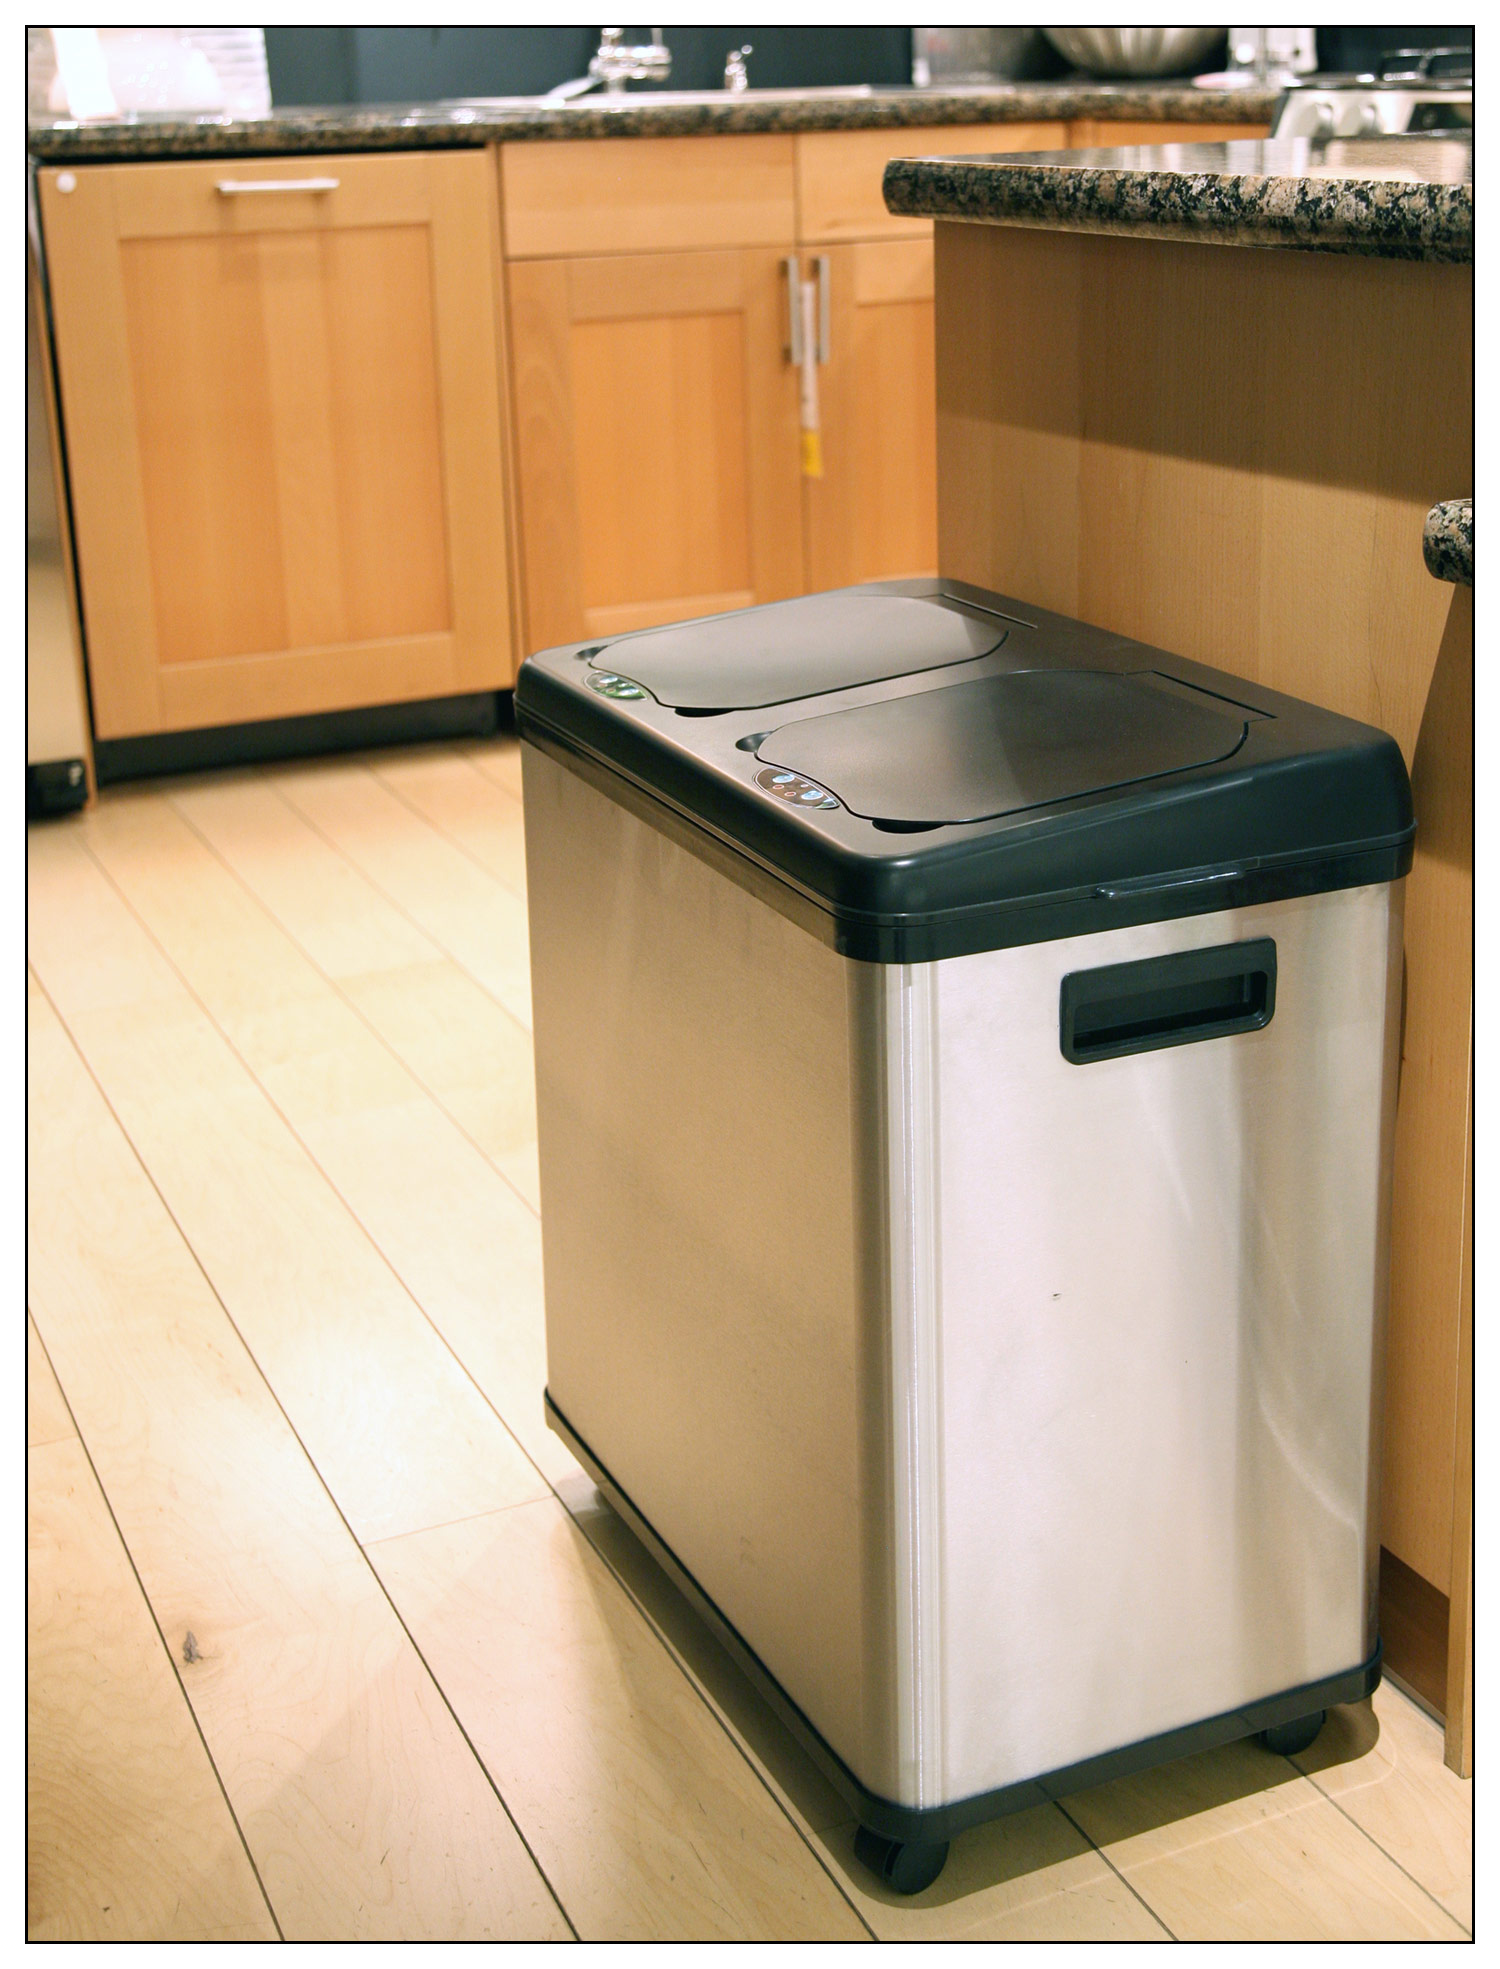 Stainless Steel Tall Kitchen Garbage Can Tall Garbage Cans Best Buy